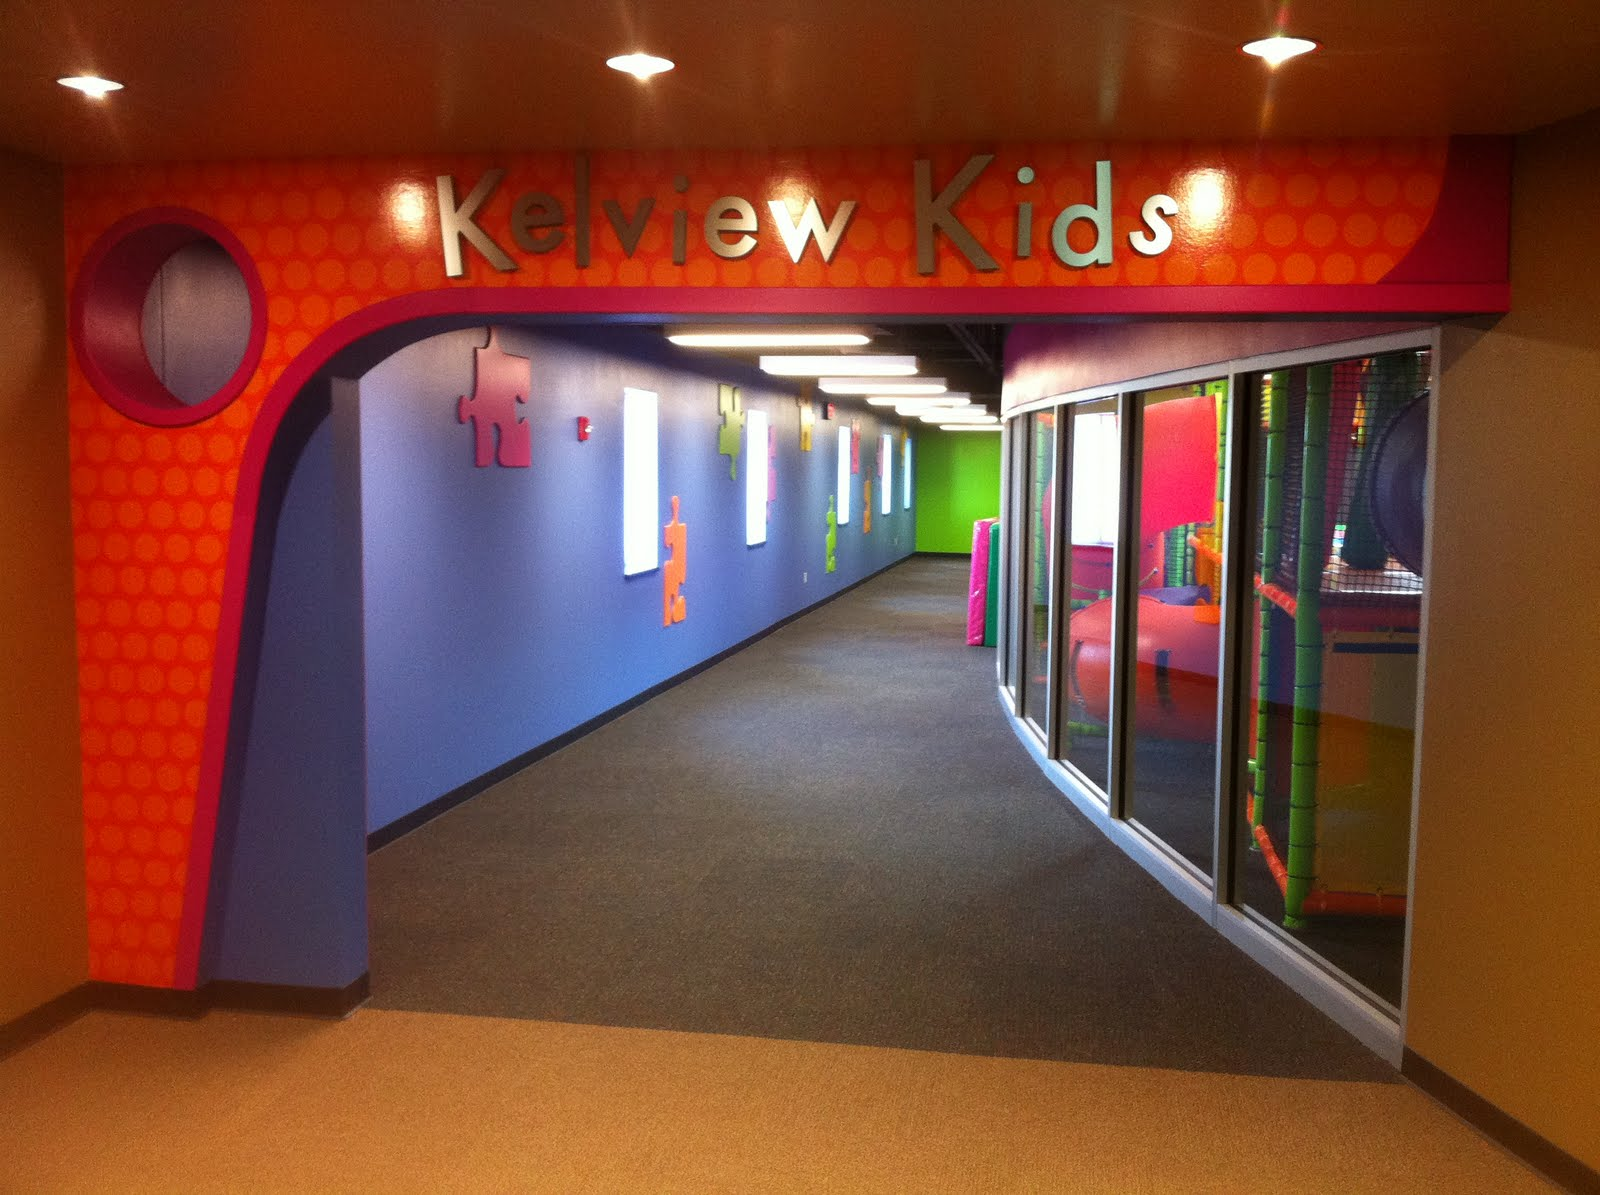 church indoor playground and creative themed kids area at kelview